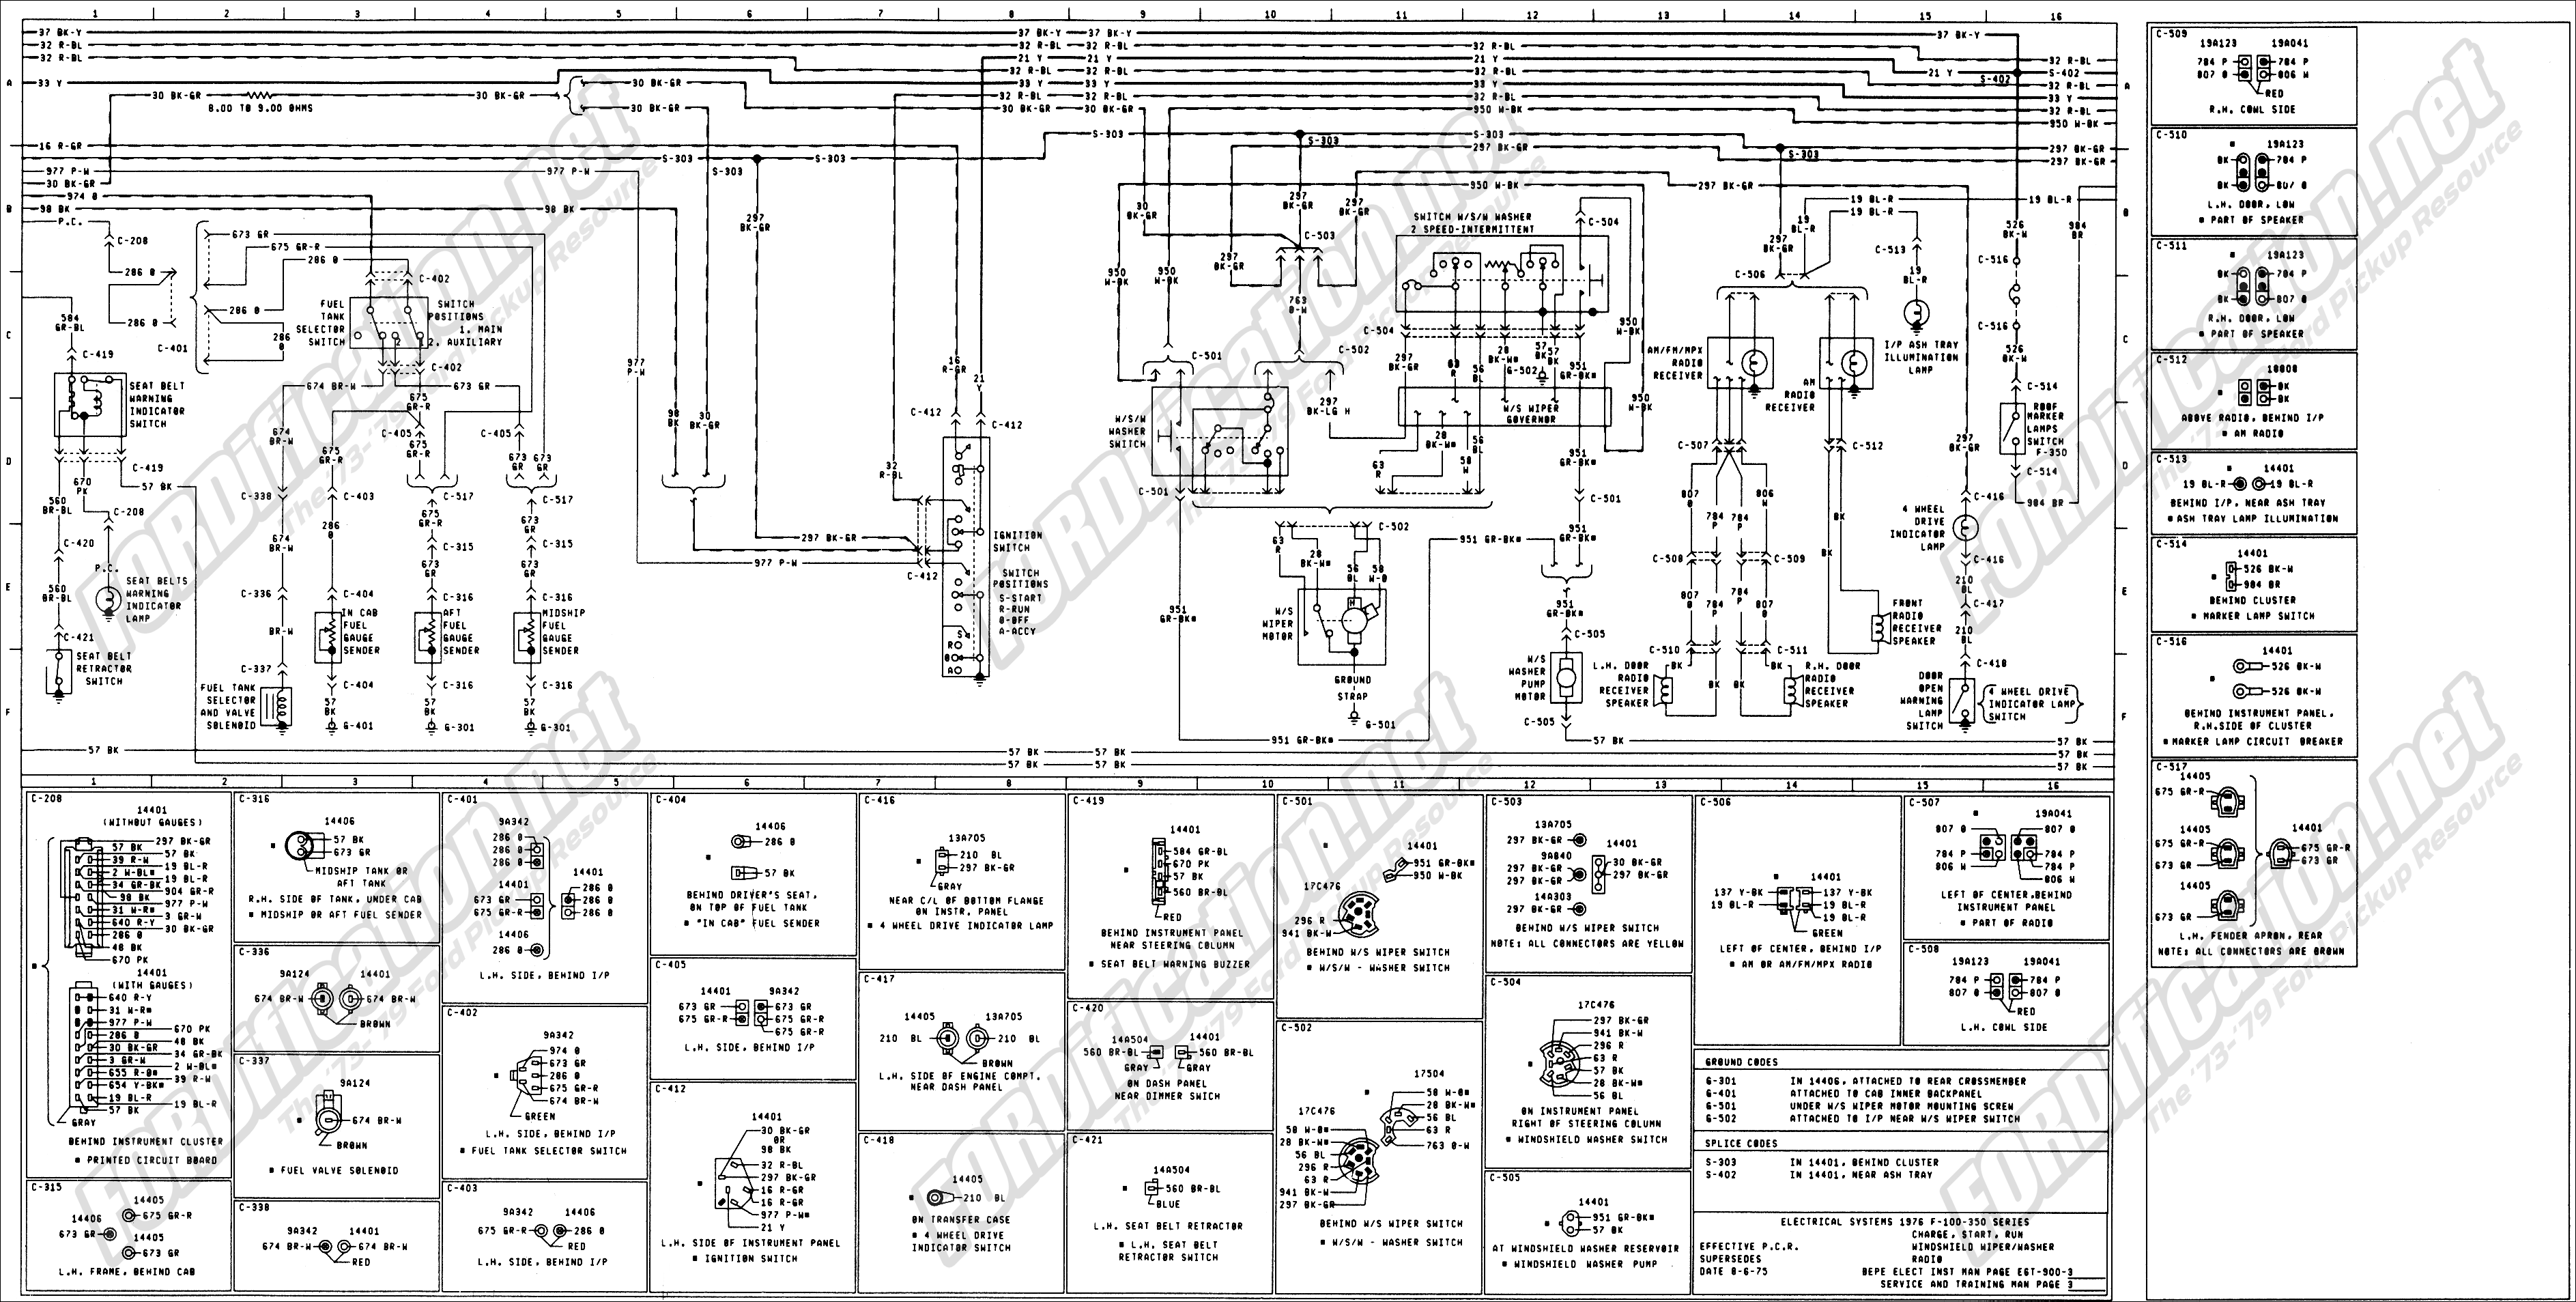 [GJFJ_338]  1973-1979 Ford Truck Wiring Diagrams & Schematics - FORDification.net | 1996 Ford F750 Wiring Schematic |  | FORDification.net